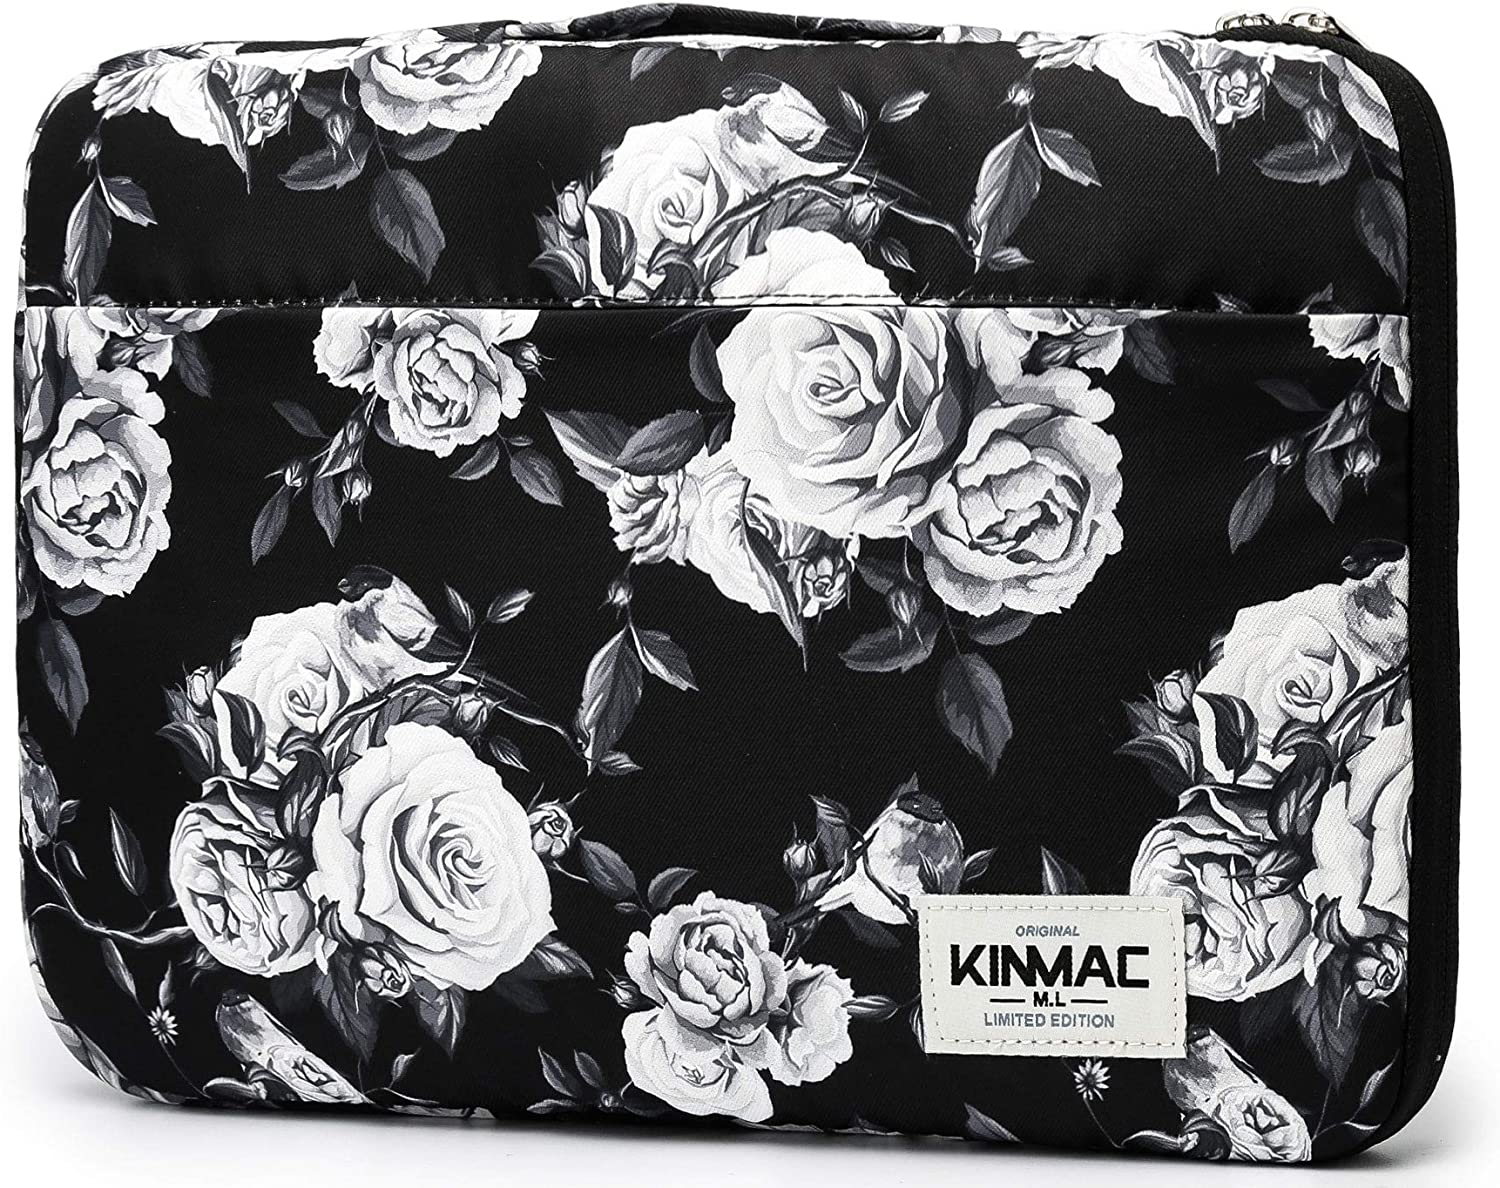 Kinmac 360° Protective 13 inch-13.9 inch Waterproof Laptop Case Bag Sleeve with Handle for 13.3 inch 13.5 inch and 13.9 inch Laptop (White Rose)